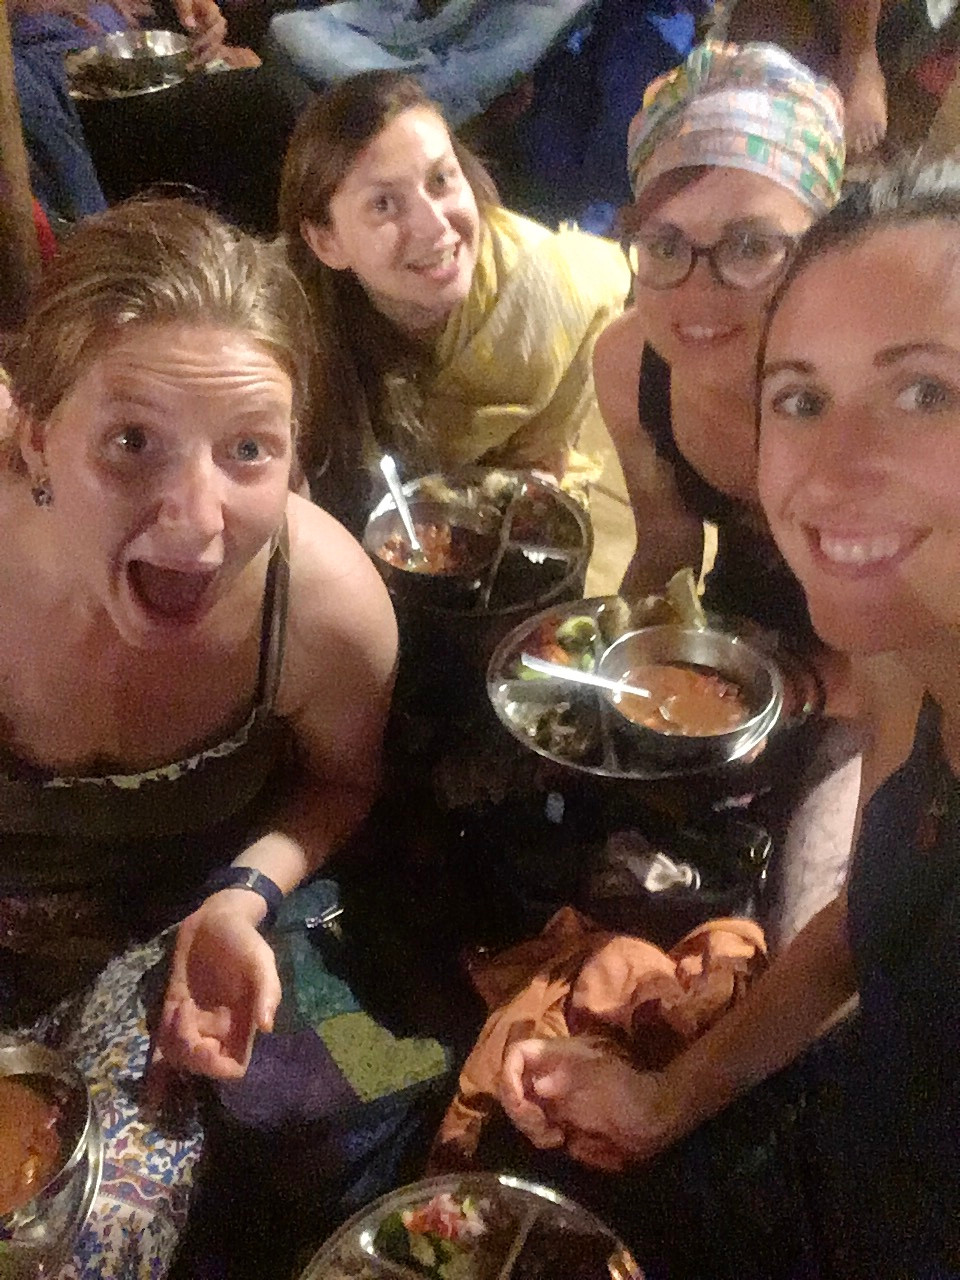 Vegan dinner and movie night at Sadhana Forest, Auroville, India.